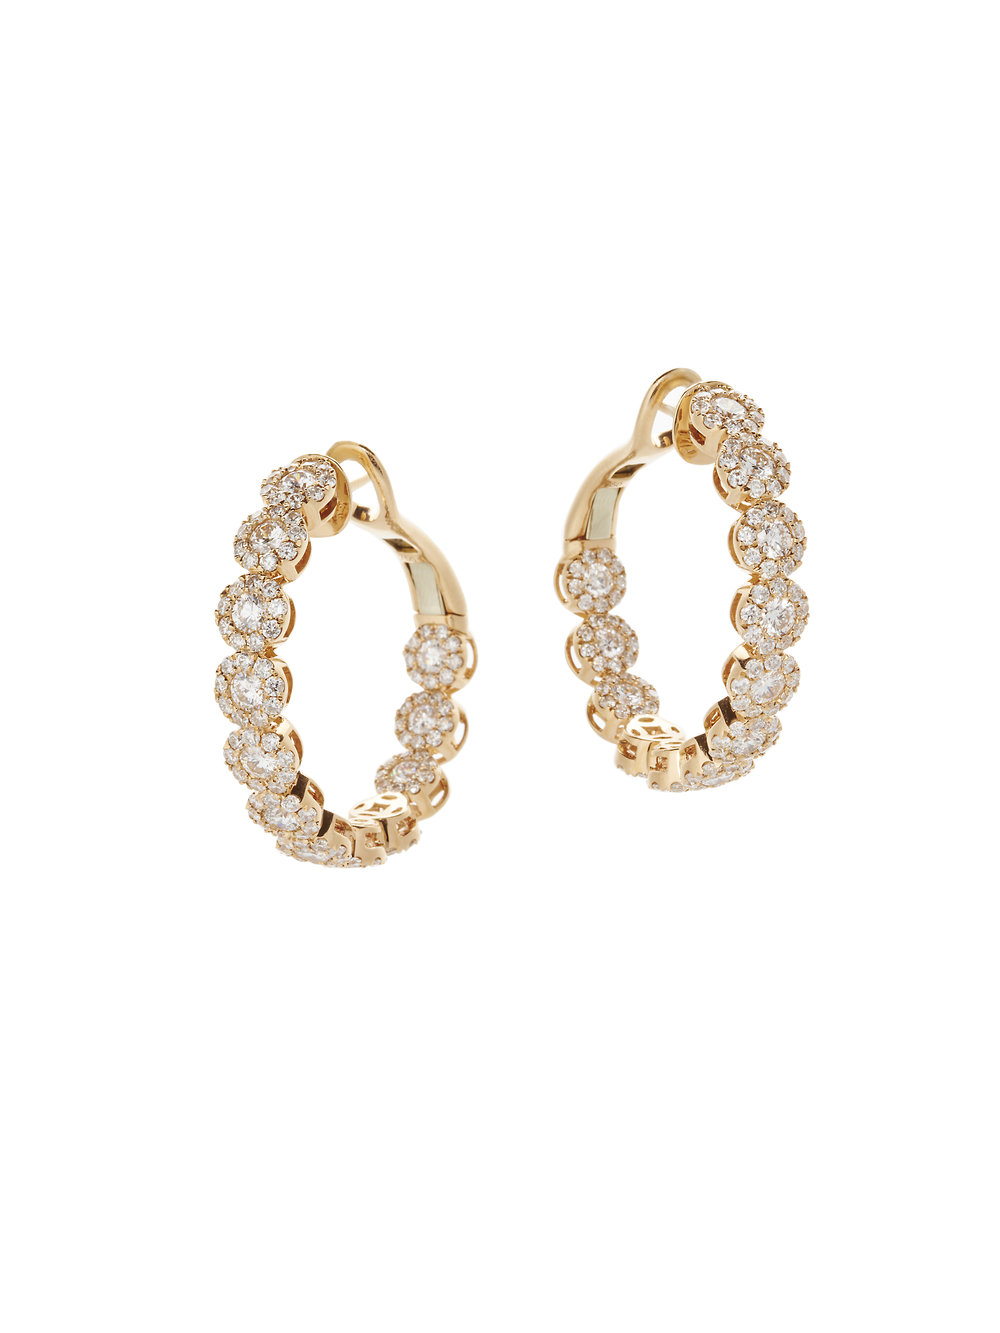 JESSICA HOOPS   18 K GOLD 5.5 CT OF DIAMONDS      Contact for inquiry